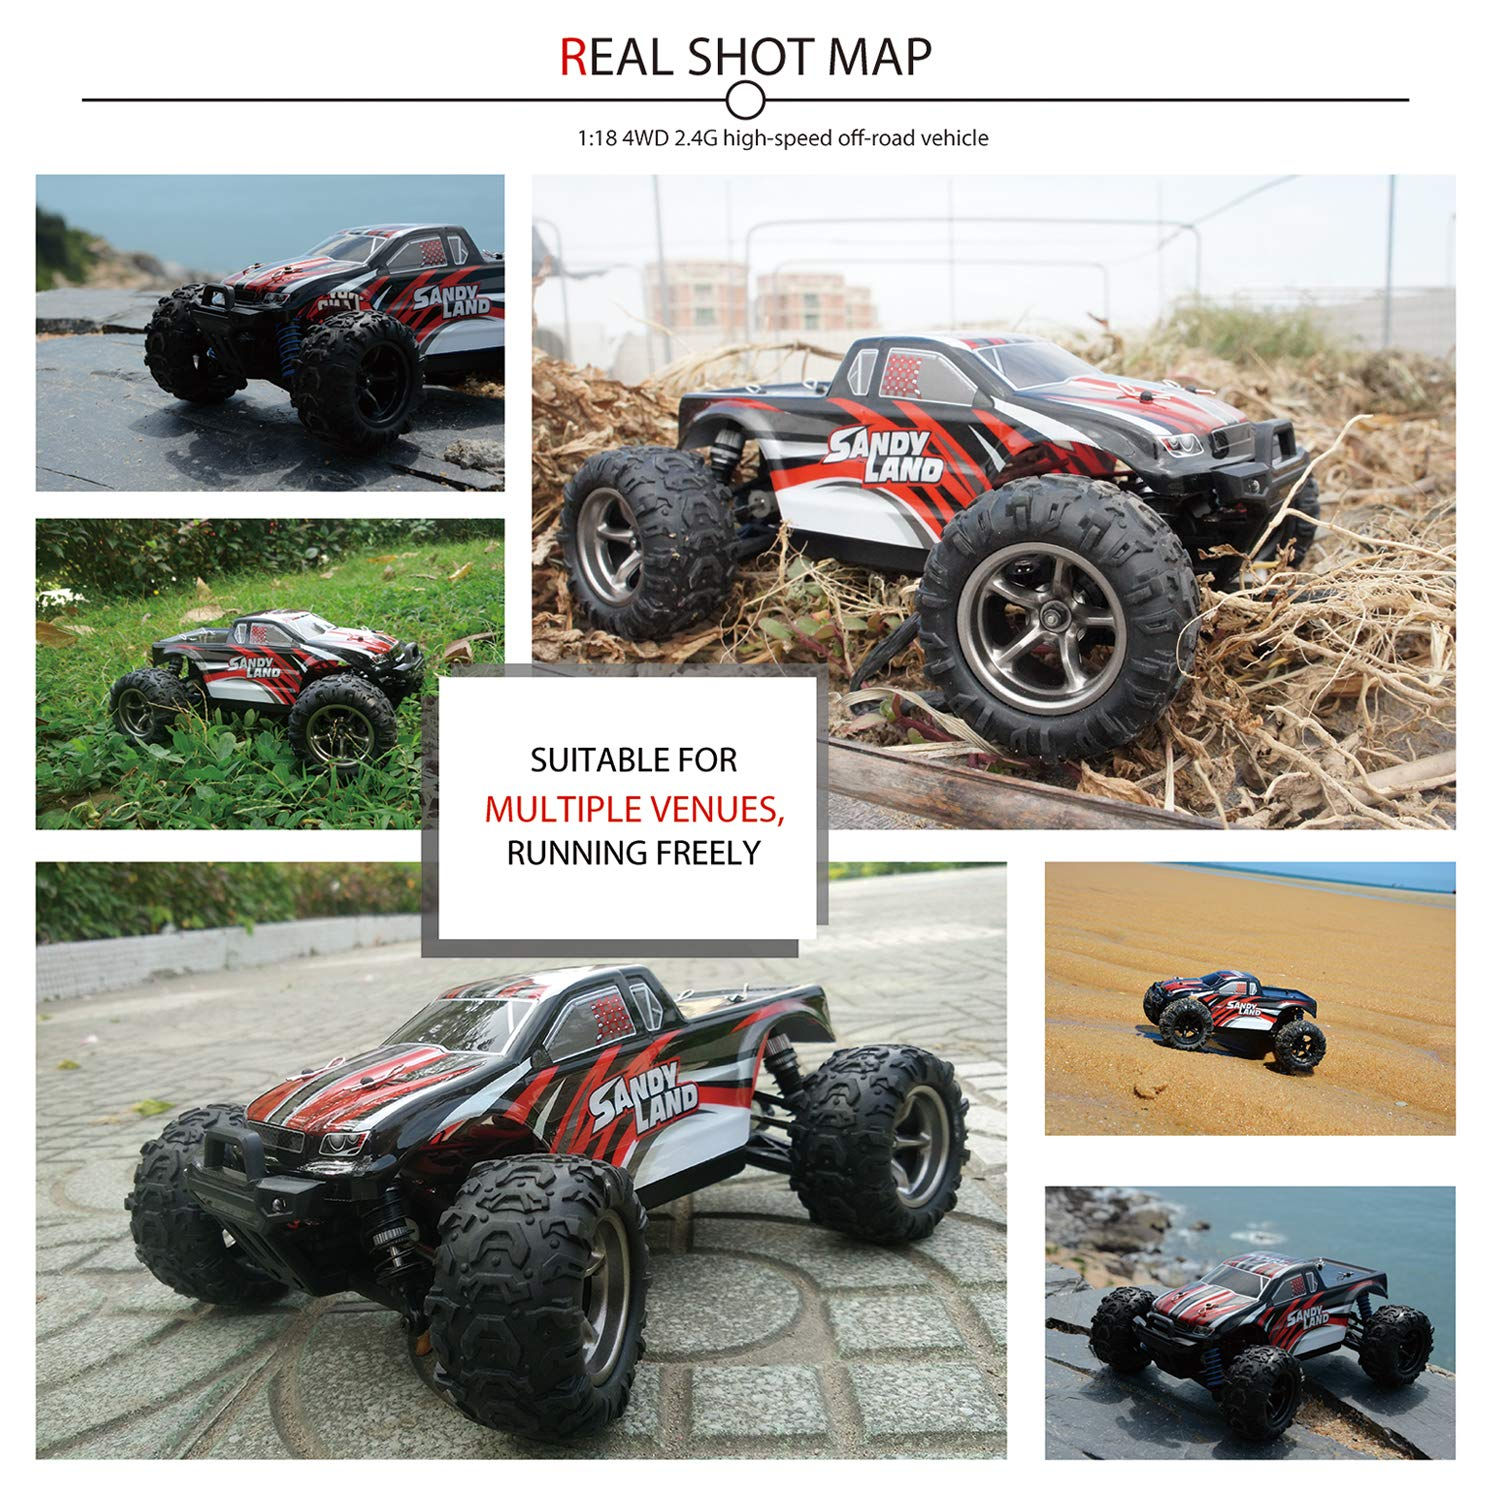 EXERCISE N PLAY RC Car, Remote Control Car, Terrain RC Cars, Electric Remote Control Off Road Monster Truck, 1:18 Scale 2.4Ghz Radio 4WD Fast 30+ MPH RC Car, with 2 Rechargeable Batteries by EXERCISE N PLAY (Image #4)